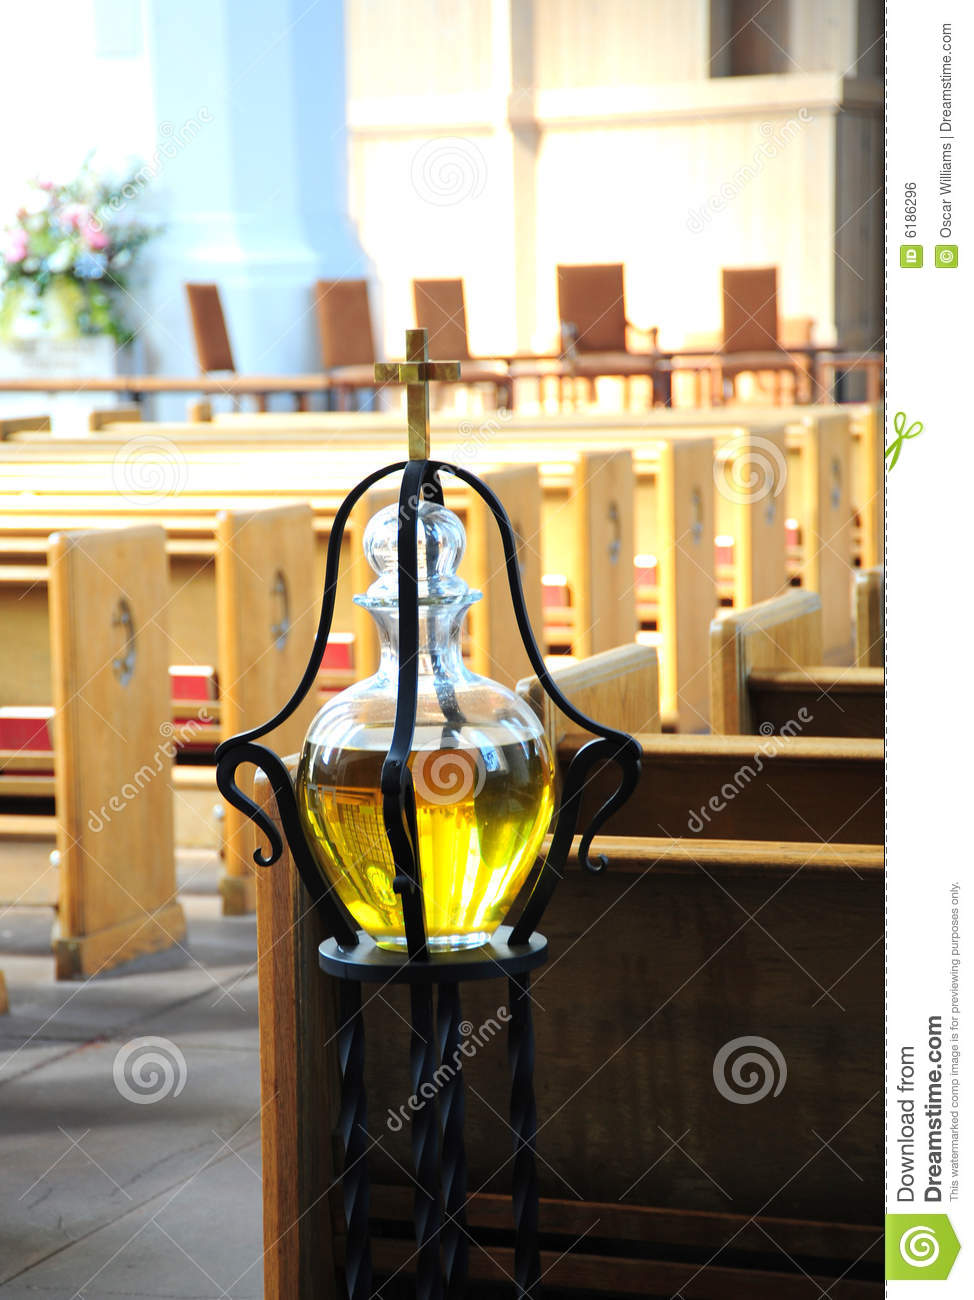 Anointing Oil stock photo  Image of sacred, belief, holy - 6186296